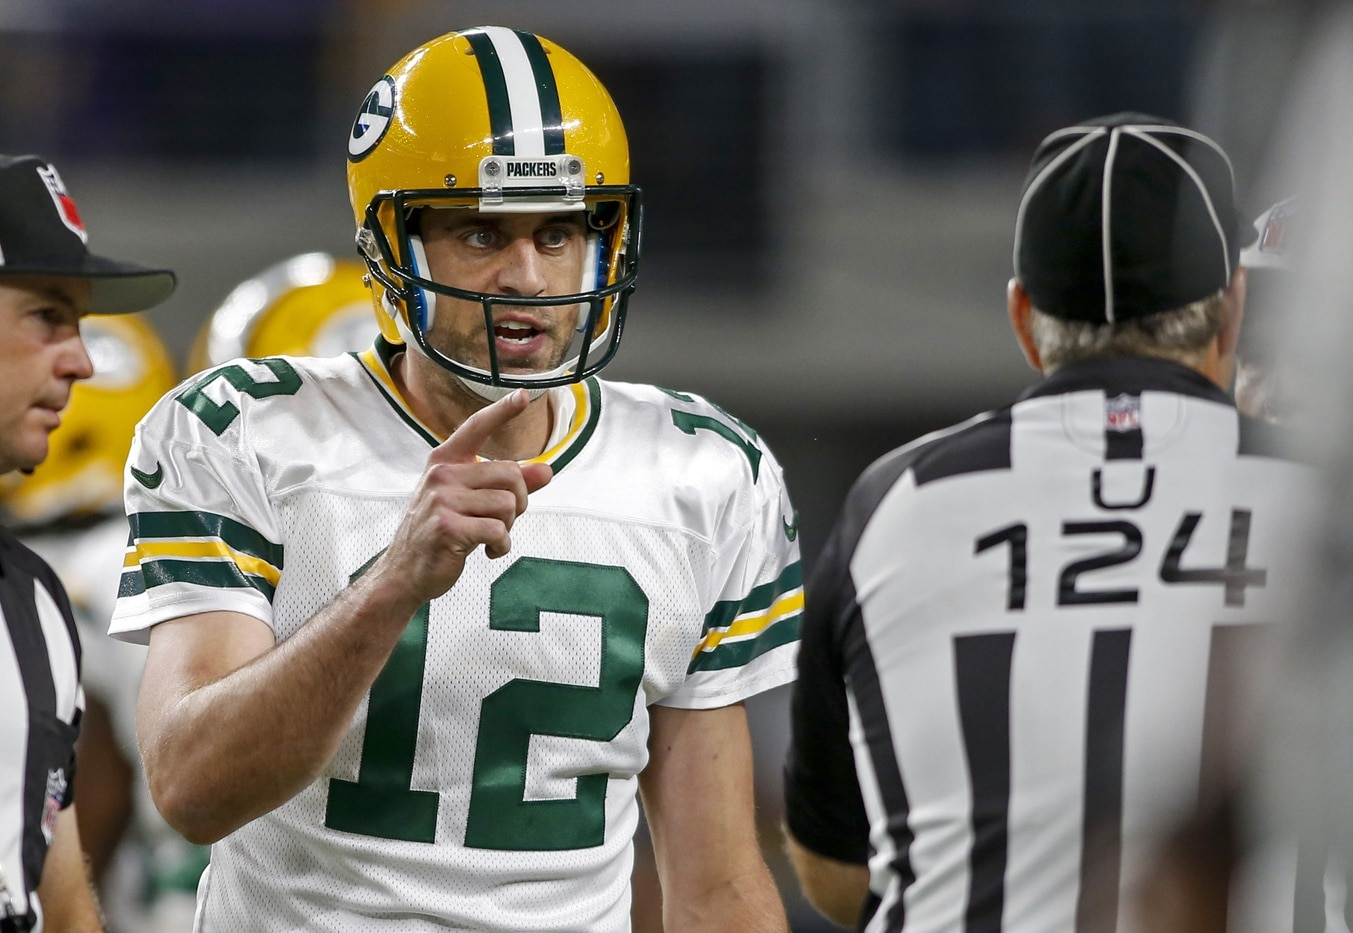 NFL Week 5, Aaron Rodgers